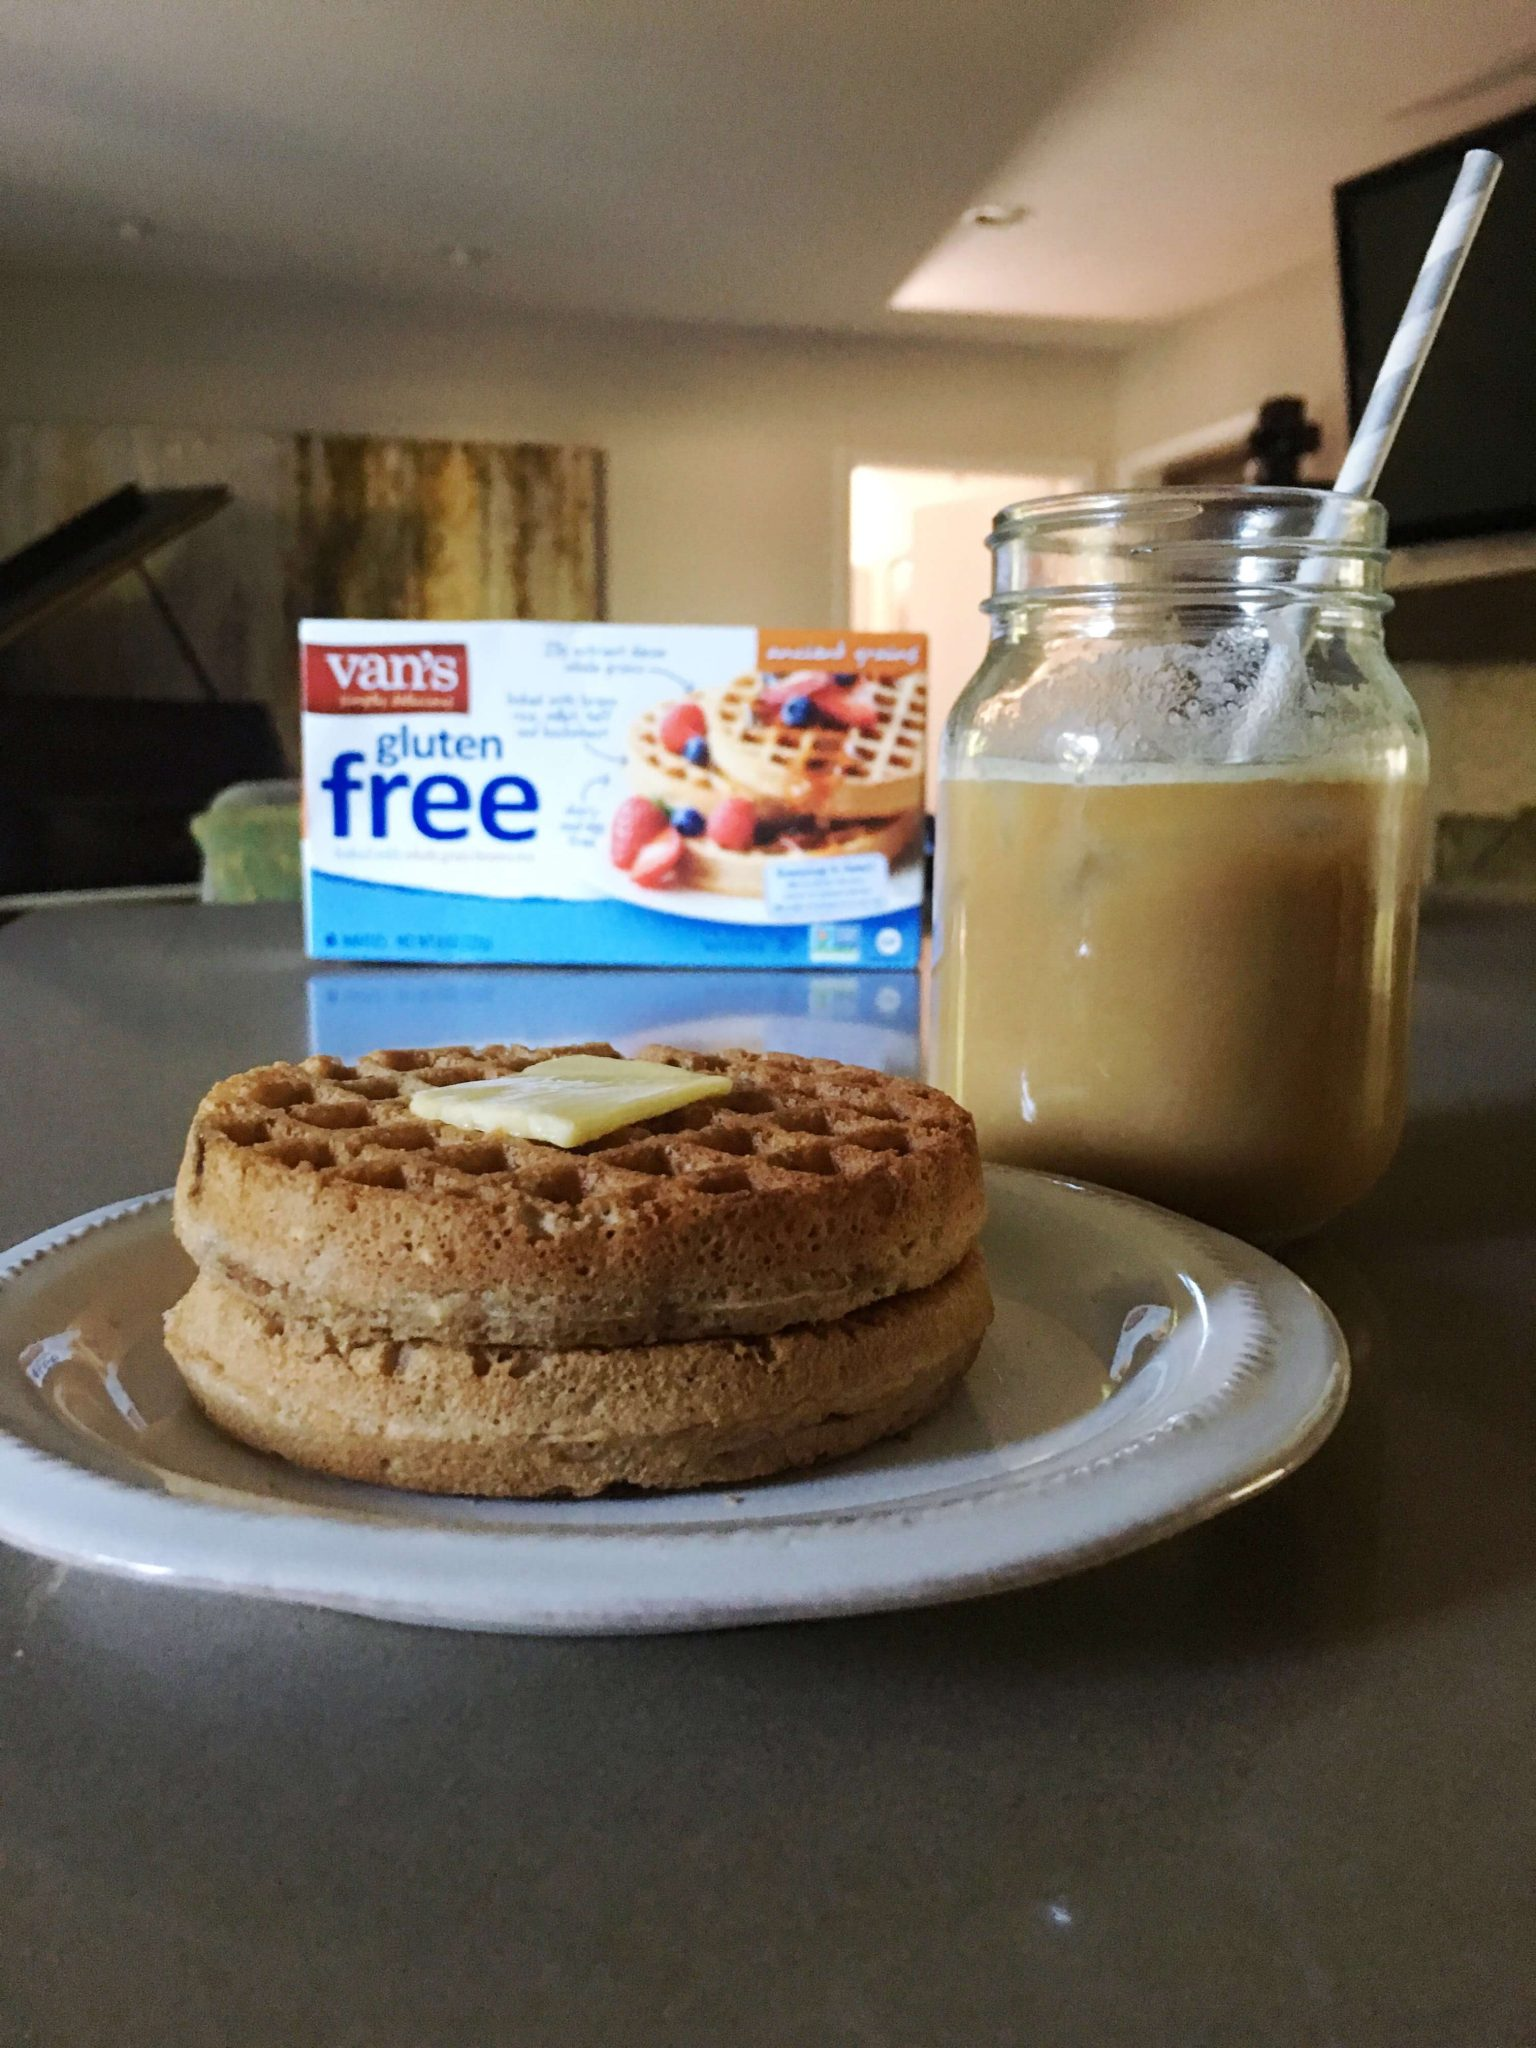 Giveaway with Vans Gluten Free Waffles // www.thehisfor.com